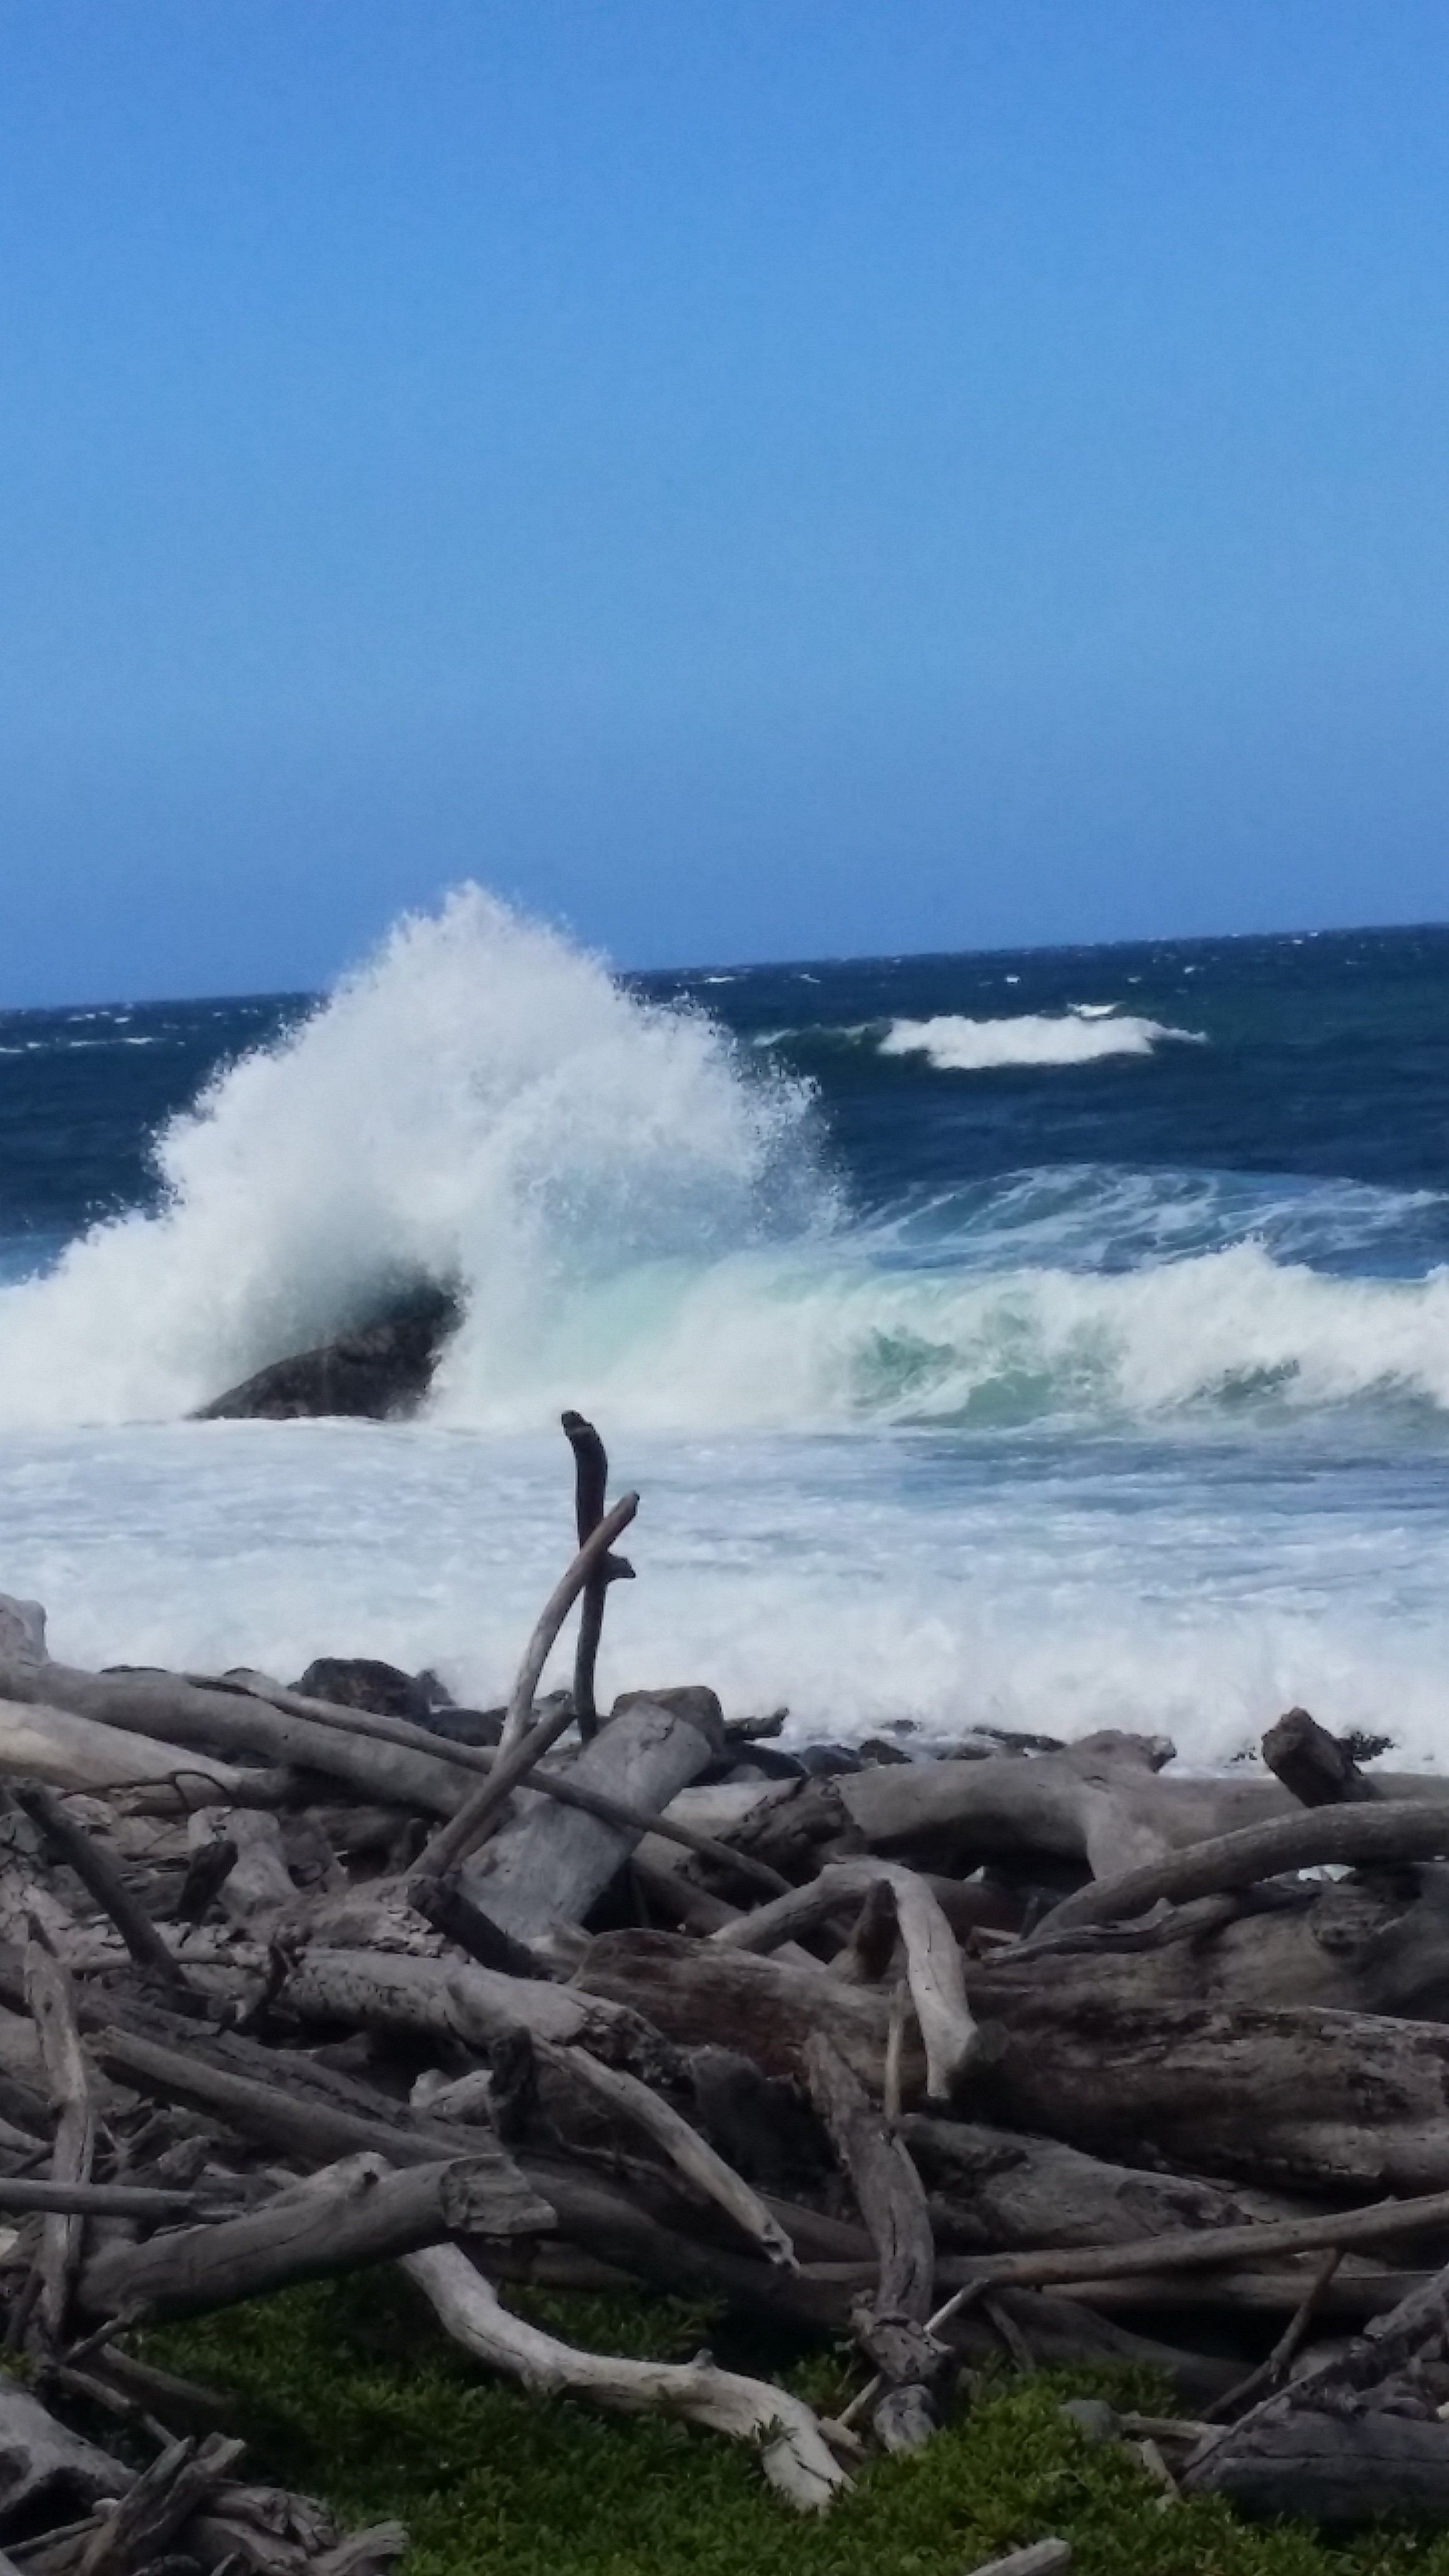 waves and drift wood